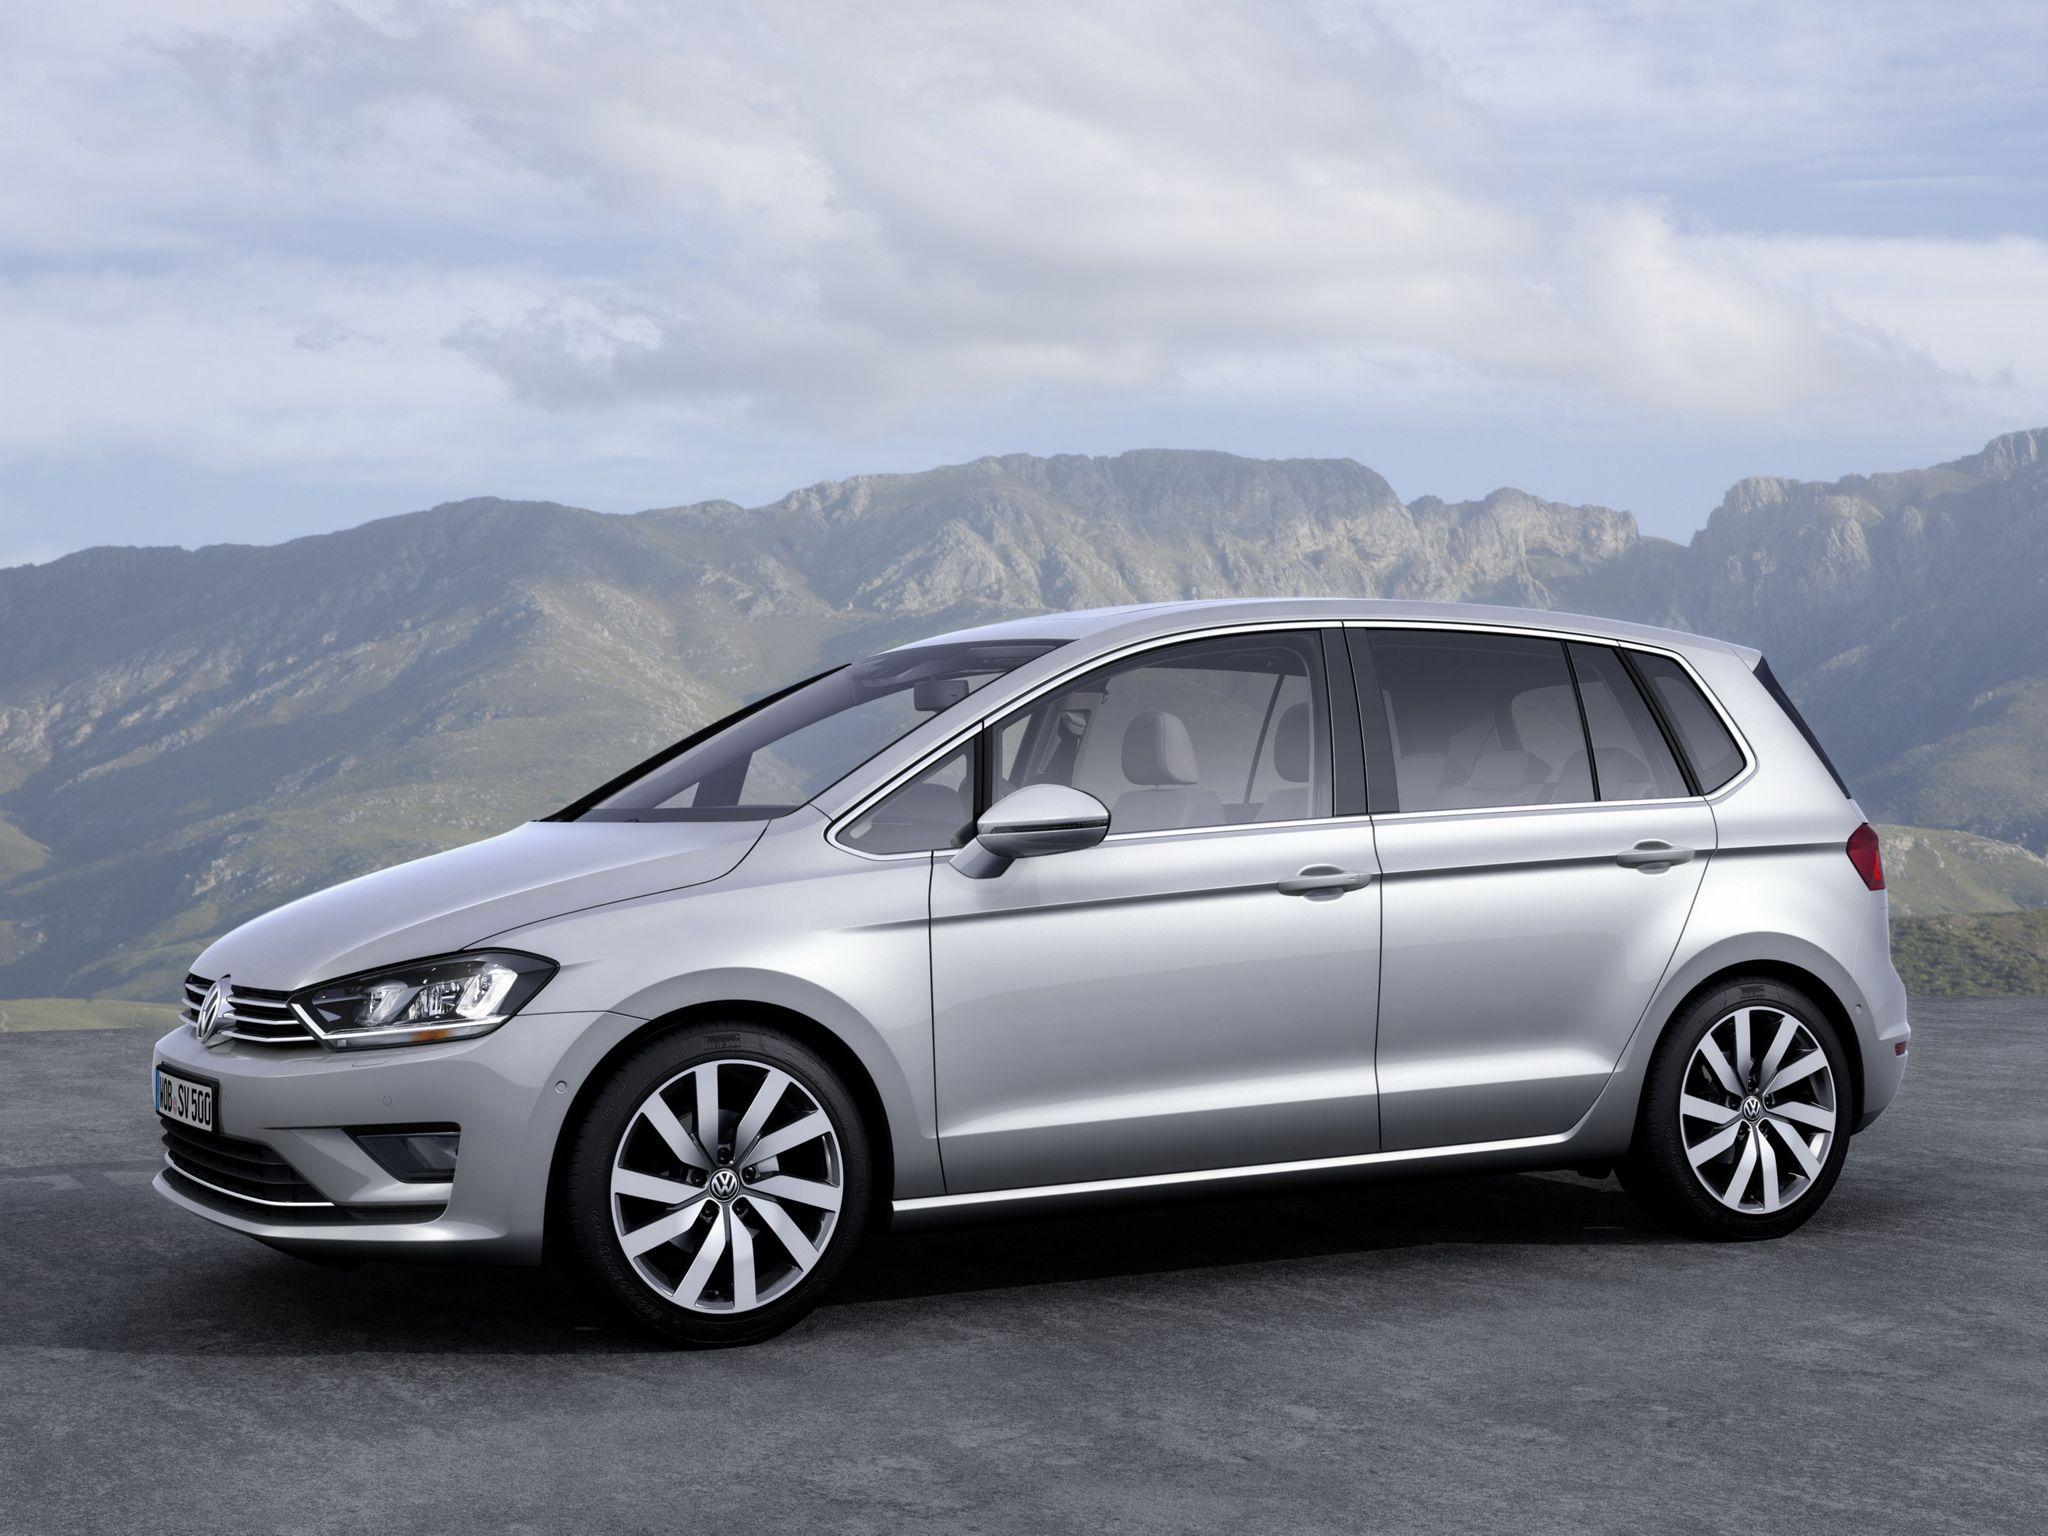 2016 Volkswagen Golf vii sportsvan – pictures, information and specs ...